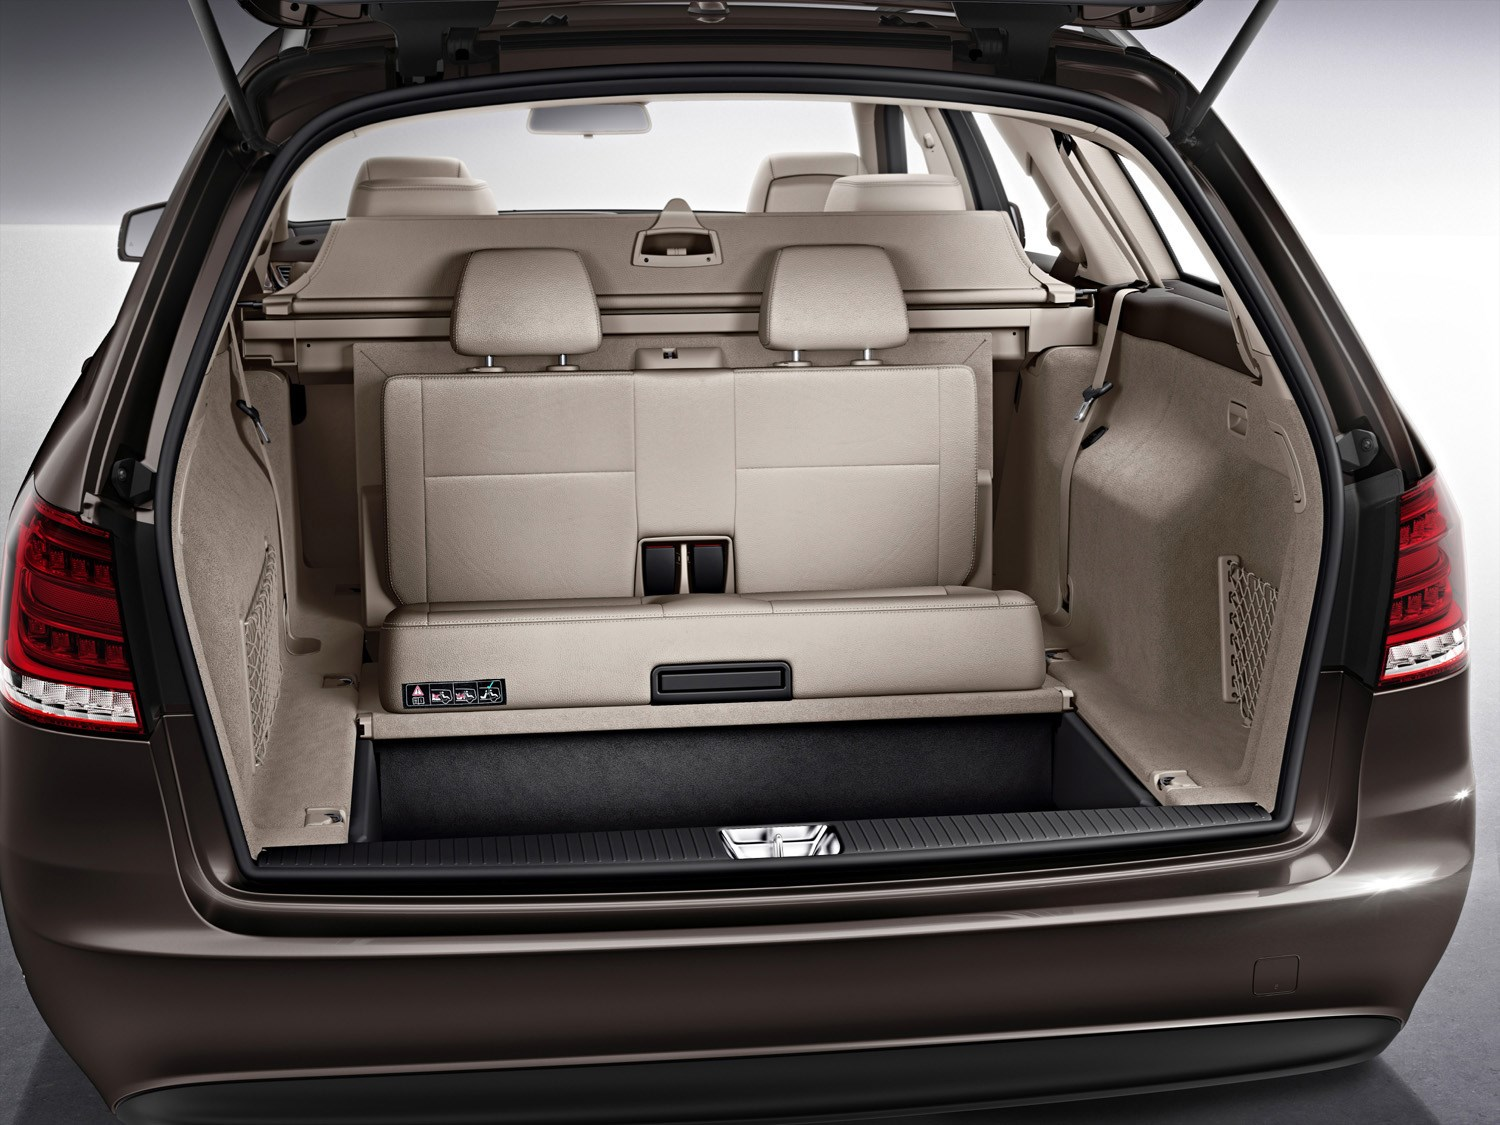 mercedes benz e class estate 2010 photos parkers. Black Bedroom Furniture Sets. Home Design Ideas